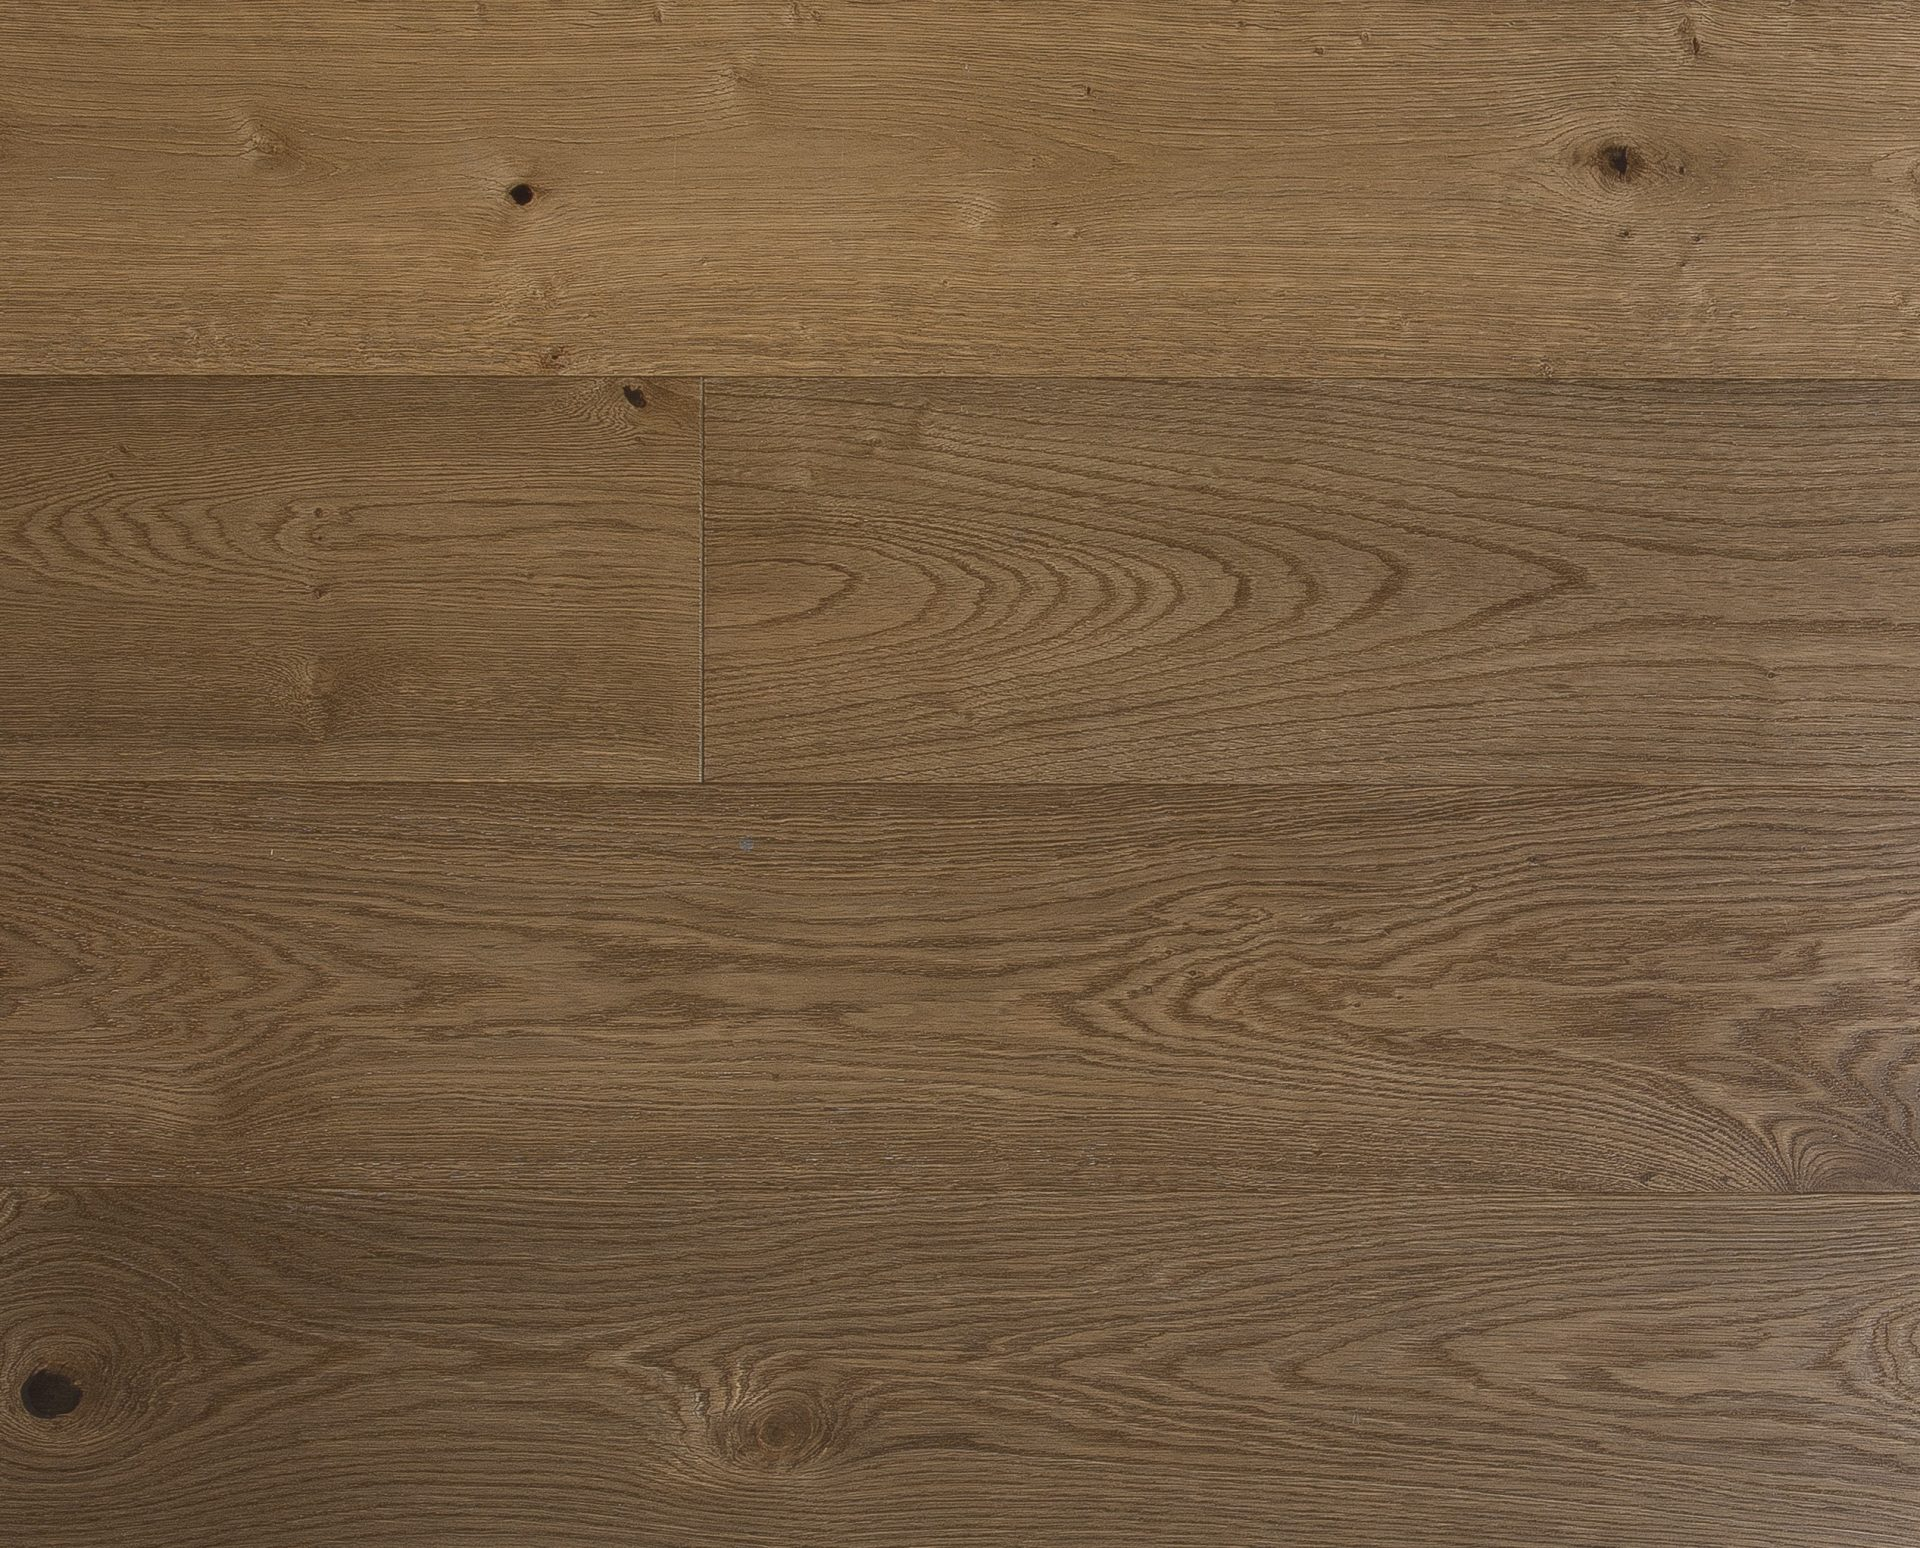 Embelton G5 Luxury Oak 14 5mm Geelong Floors